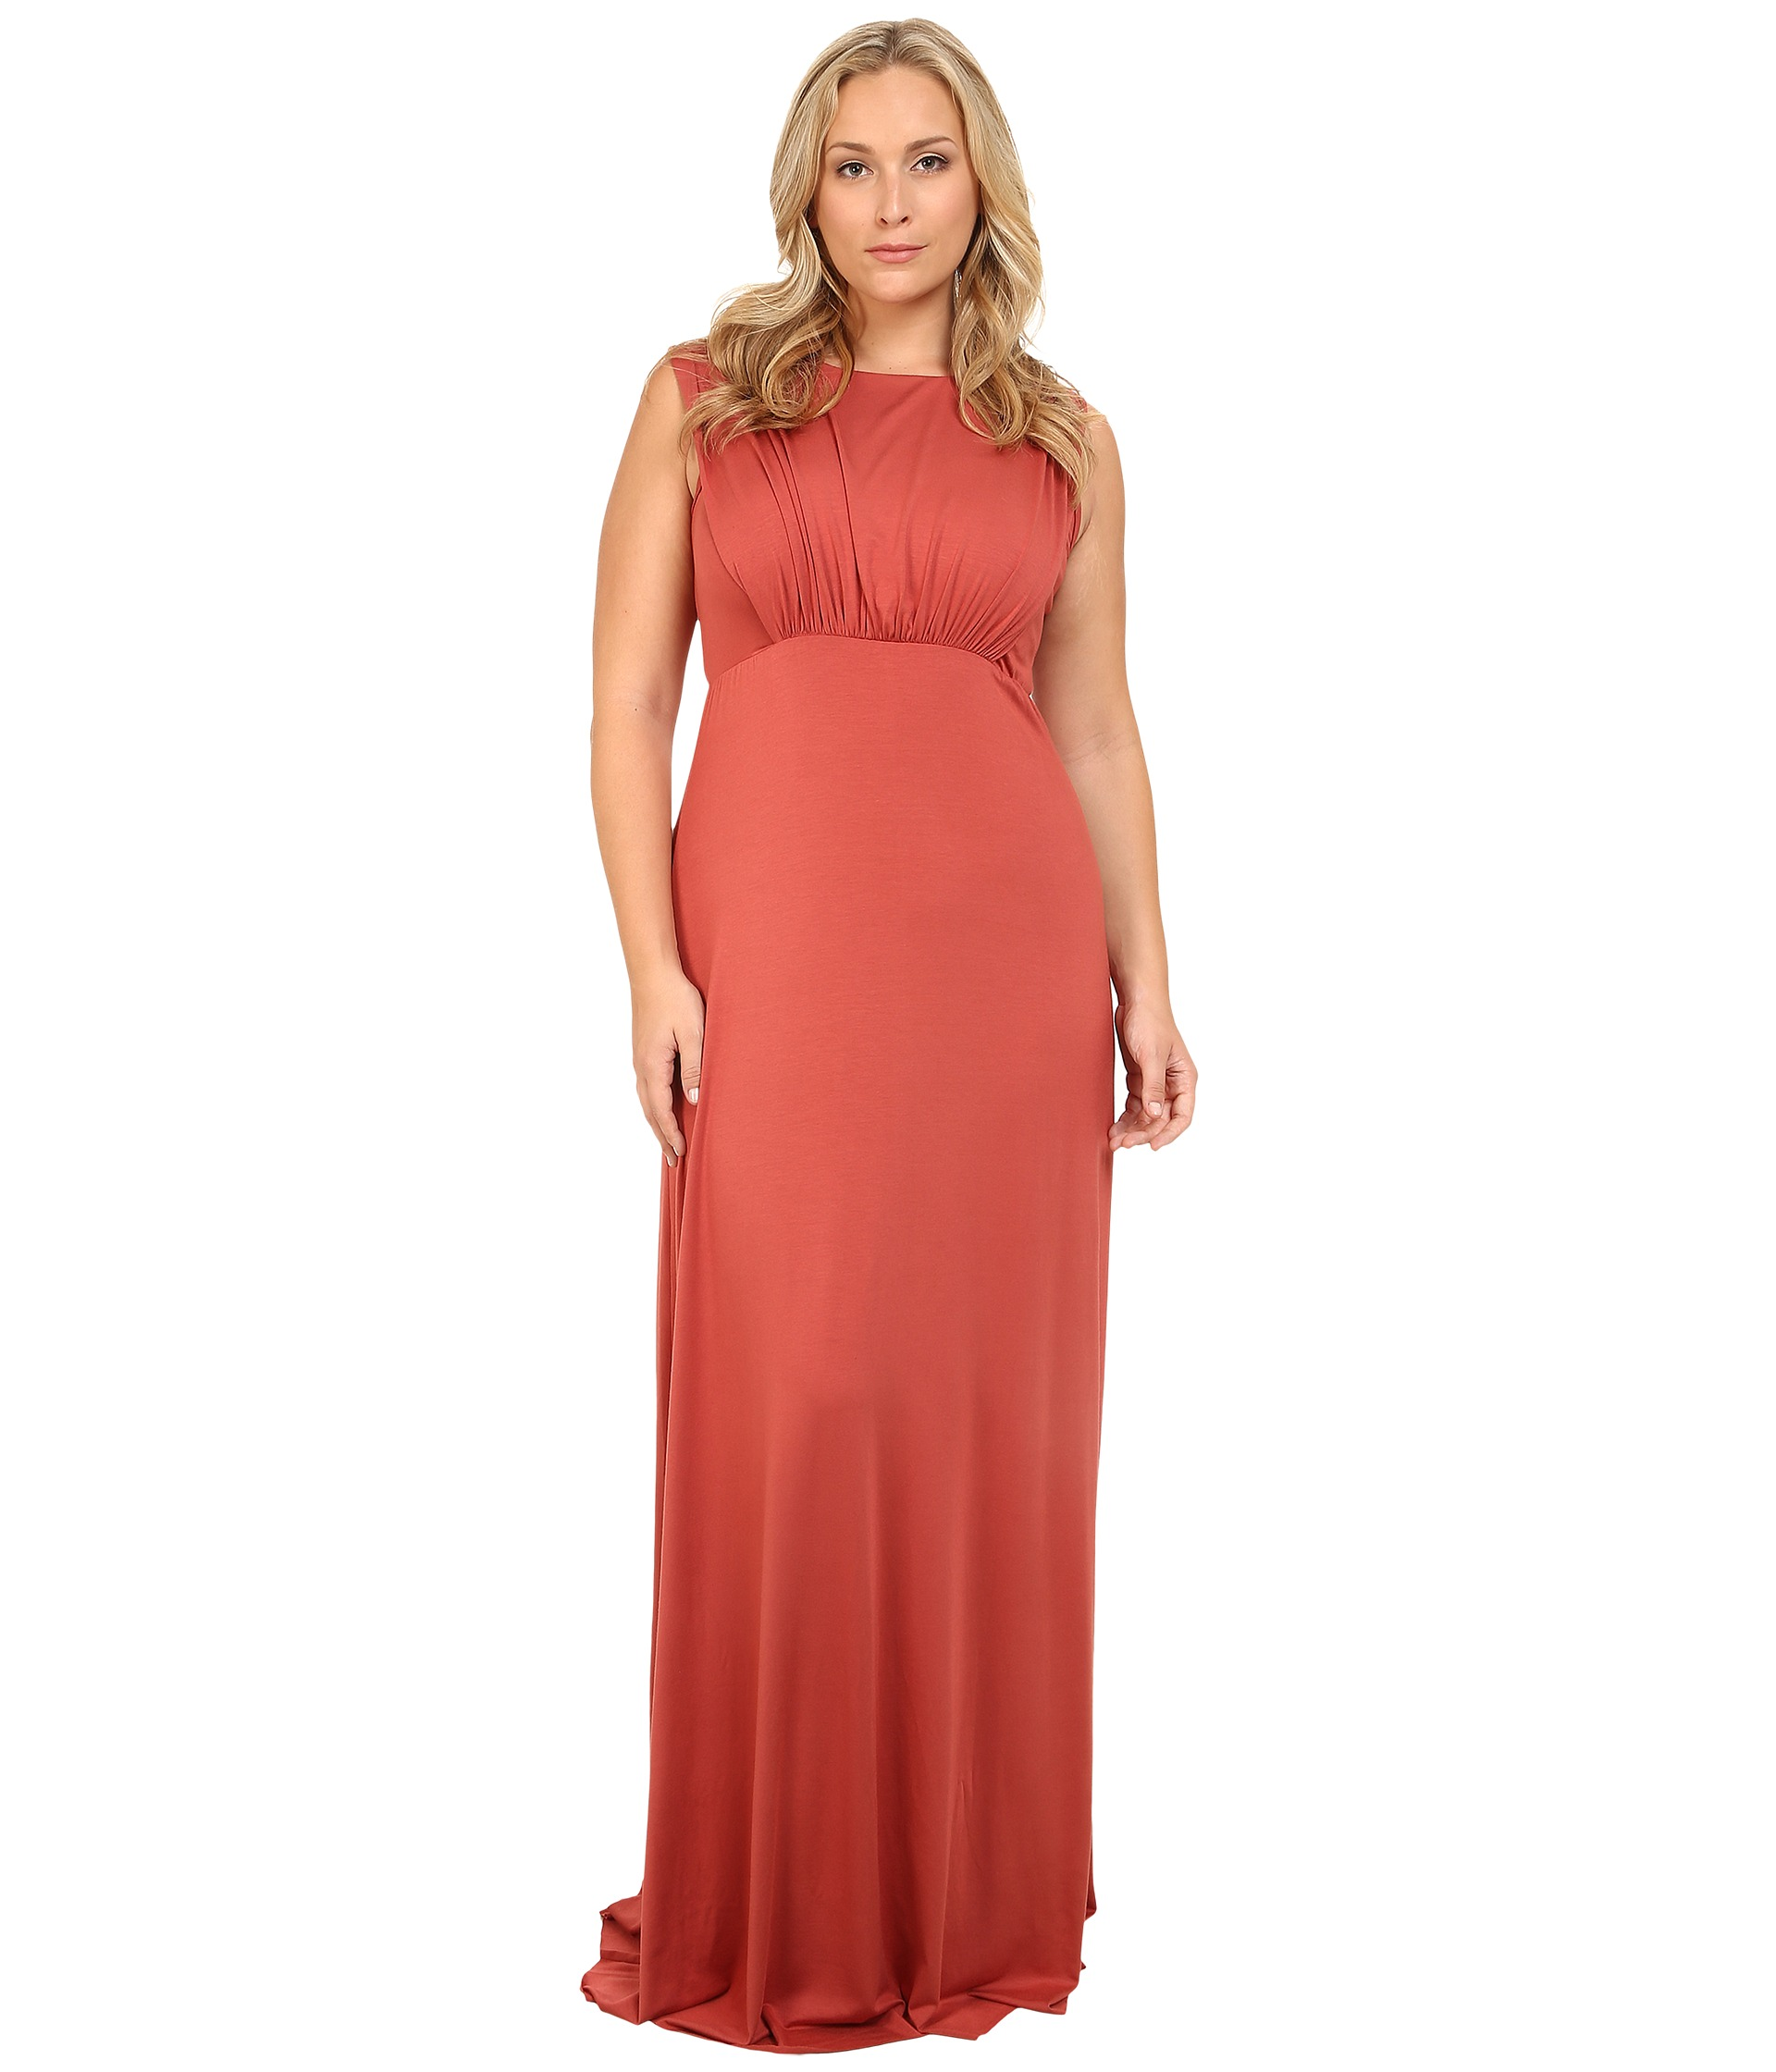 Zappos Womens Plus Size Dresses 88